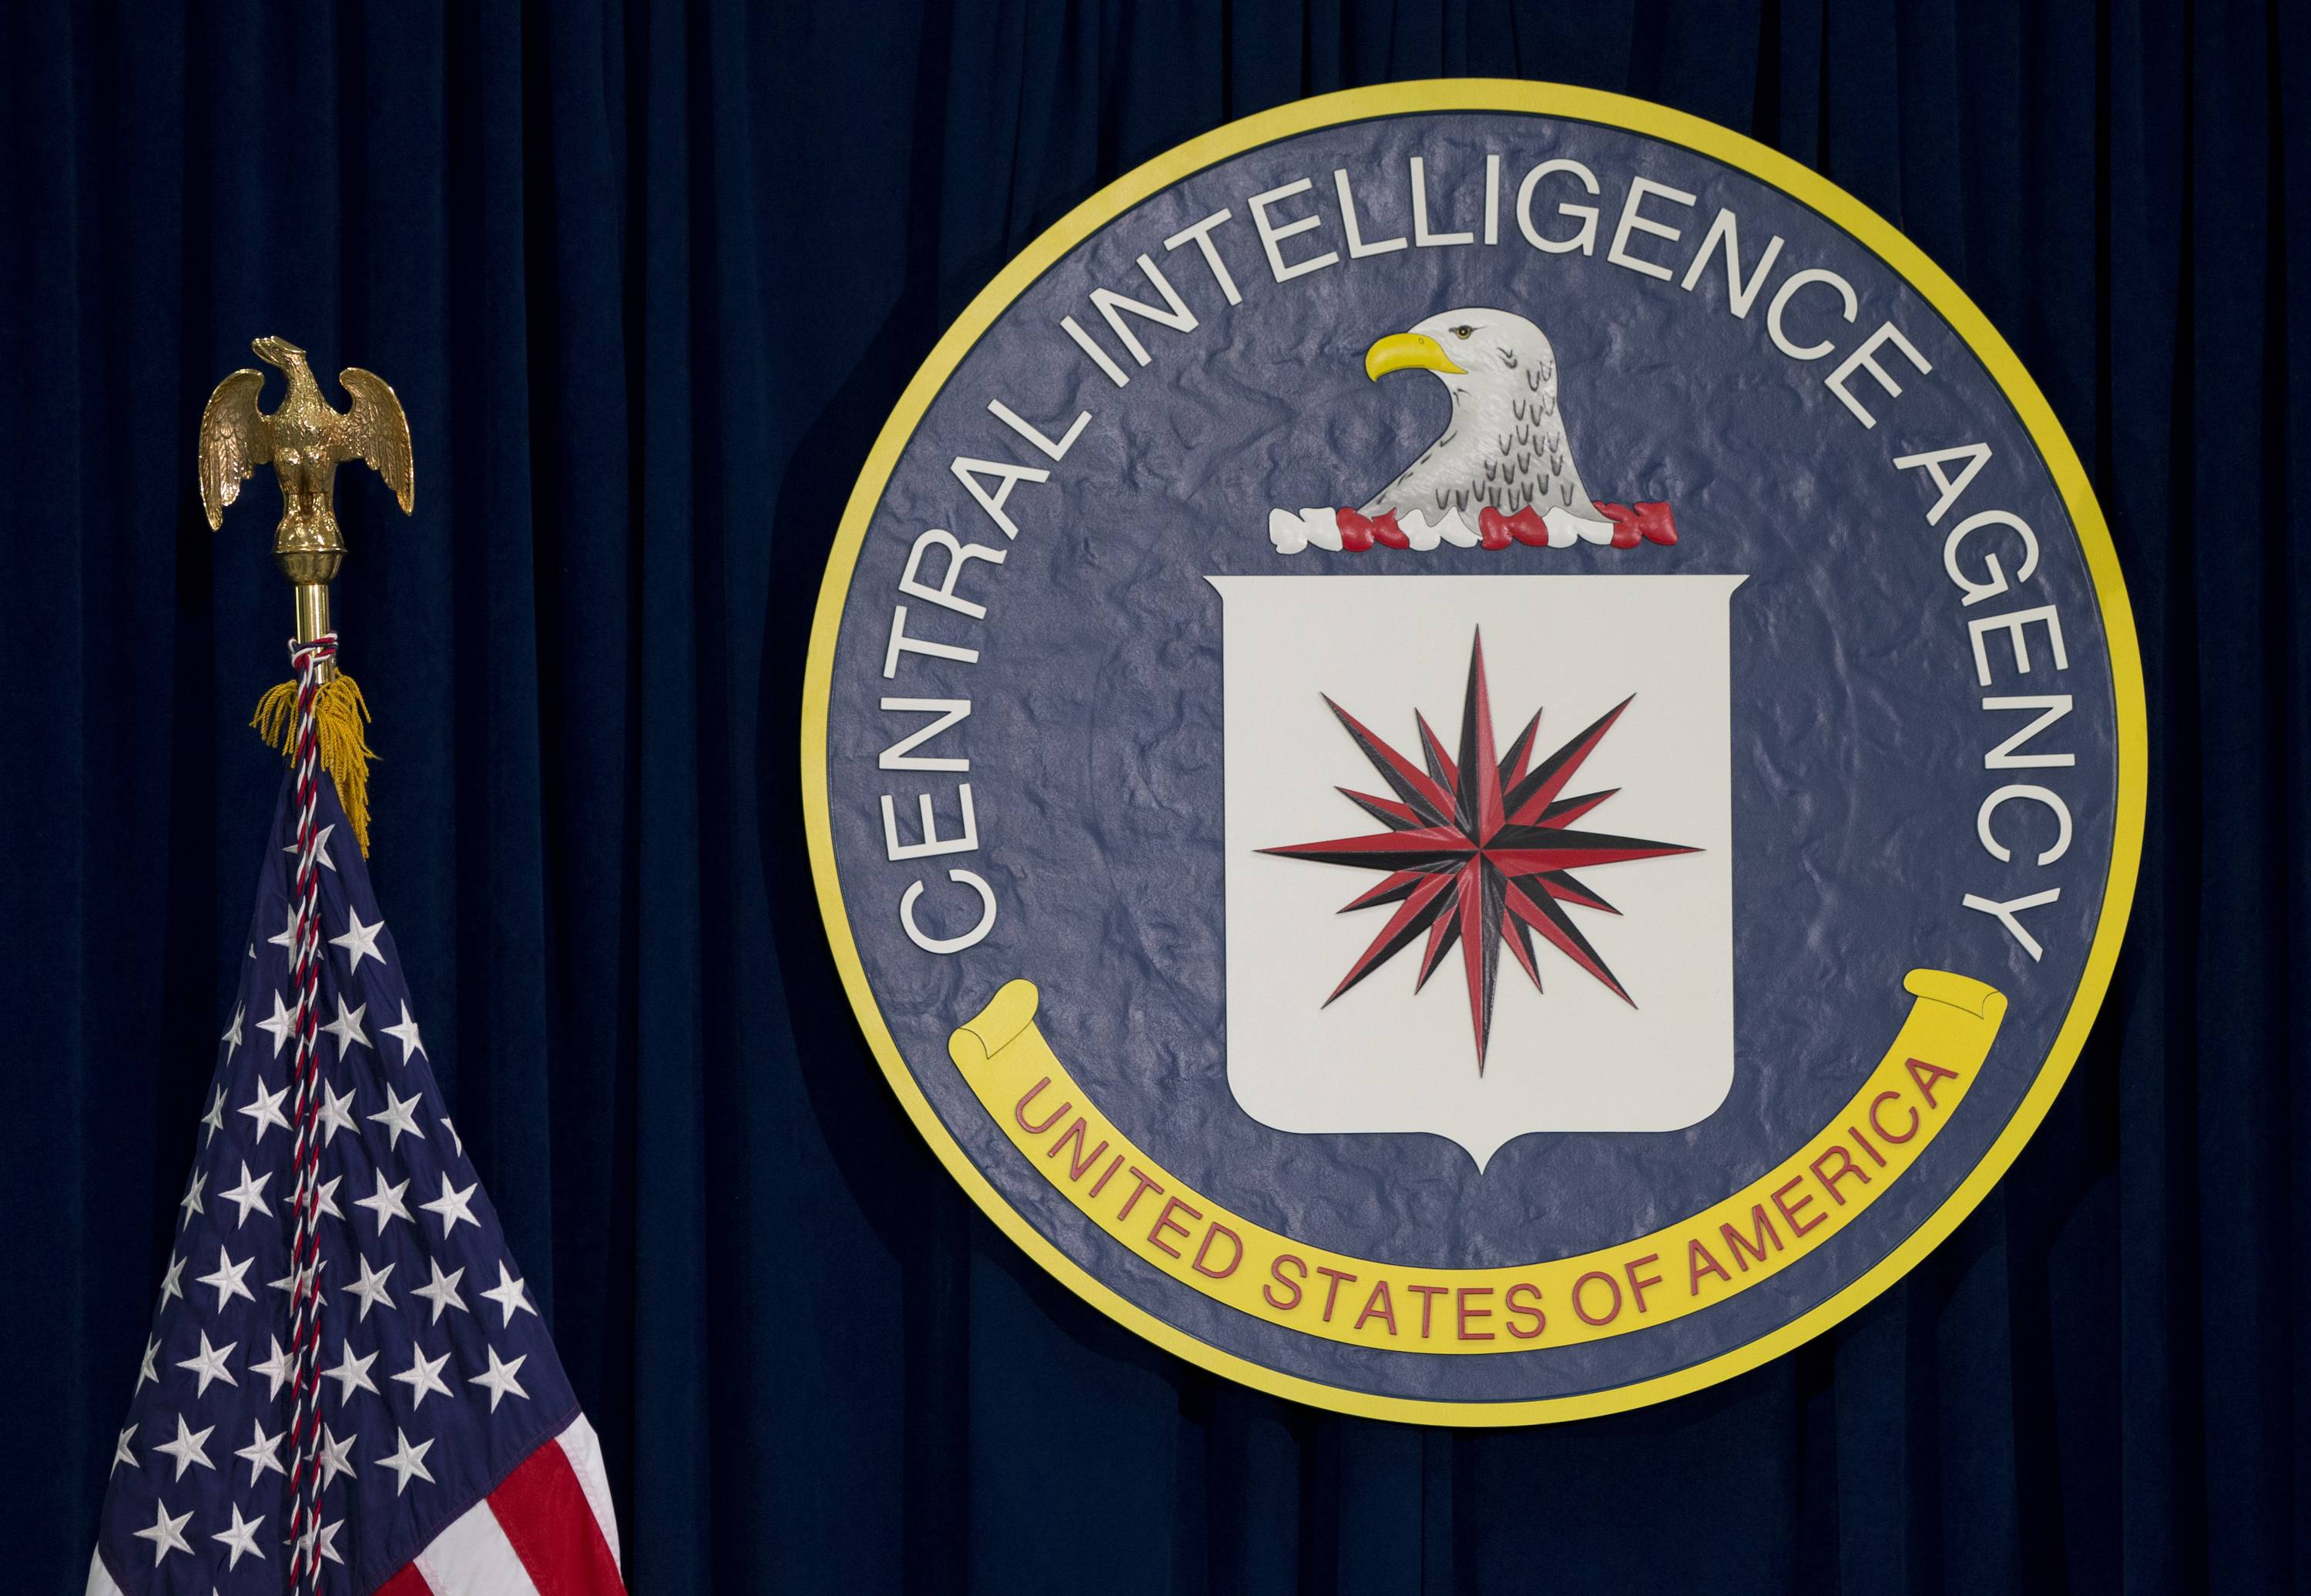 The CIA currently has 137 different artificial intelligence pilot projects underway, according to a senior agency official.